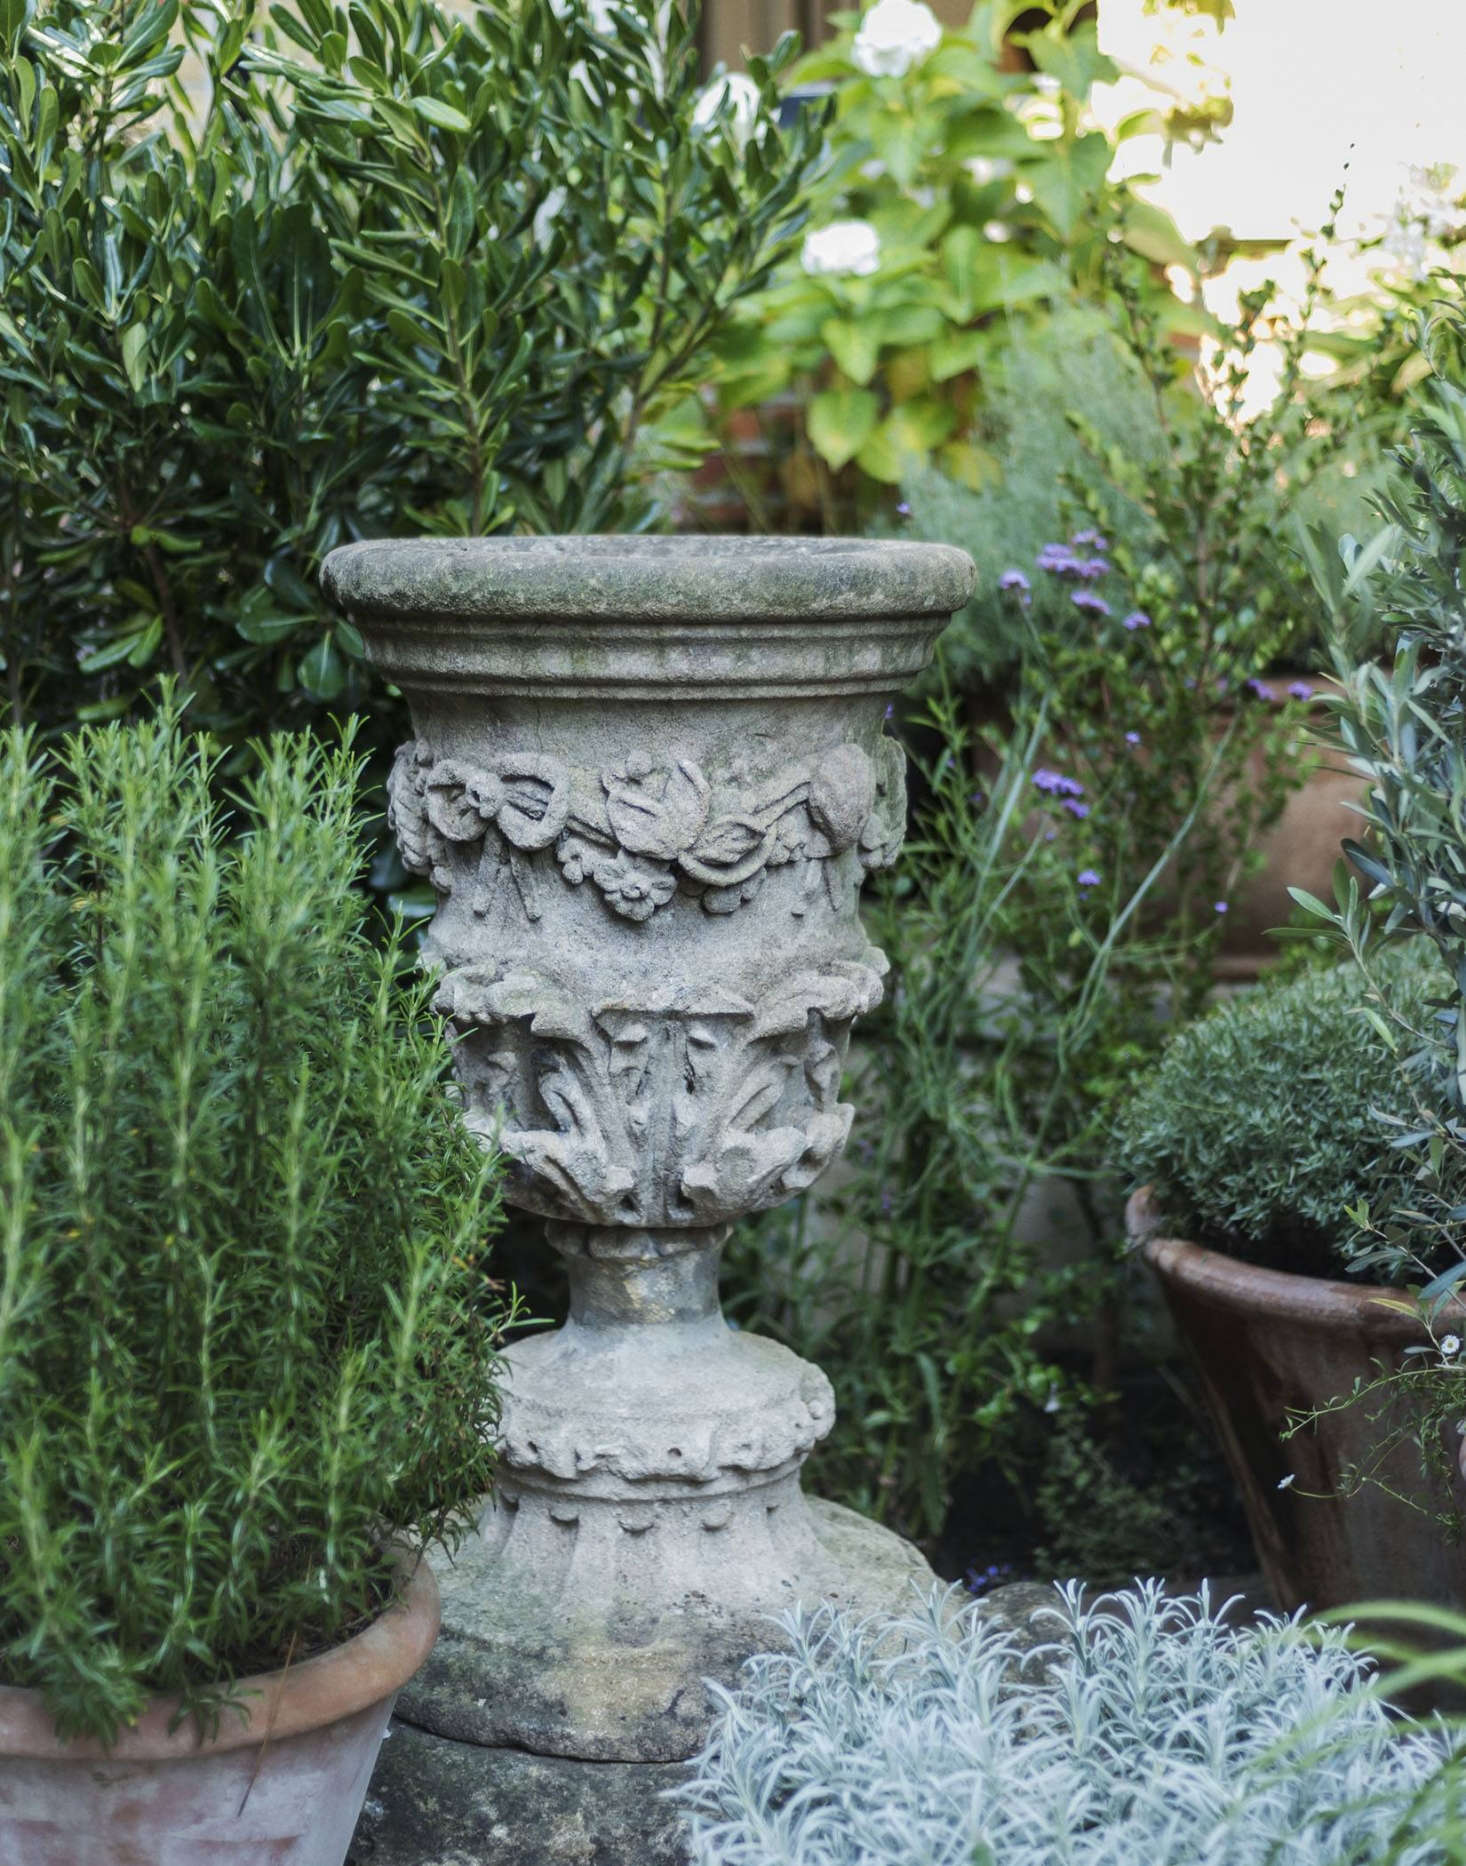 The carved stone pedestal? Uniacke hasa passion for rare antiques, and is known for her uncanny ability to discover them. During the course of the renovation, whenever she found a piece she especially liked she'd put it aside for her garden.